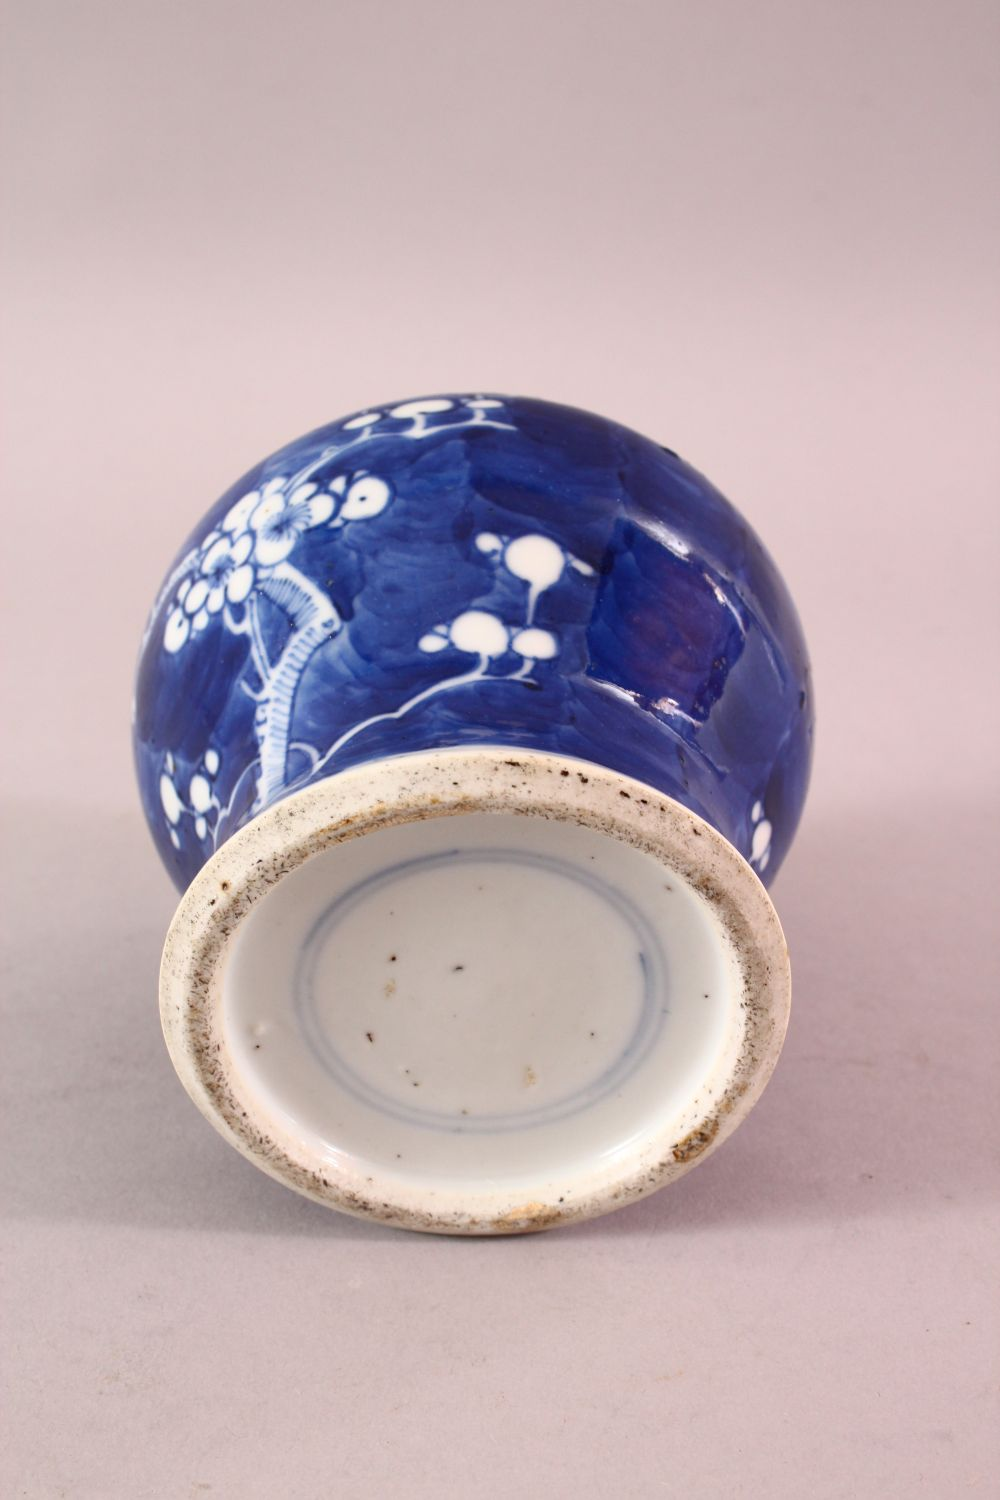 A 19TH / 20TH CENTURY CHINESE BLUE & WHITE PORCELAIN PRUNUS JAR & COVER, with prunus decoration, - Image 6 of 6